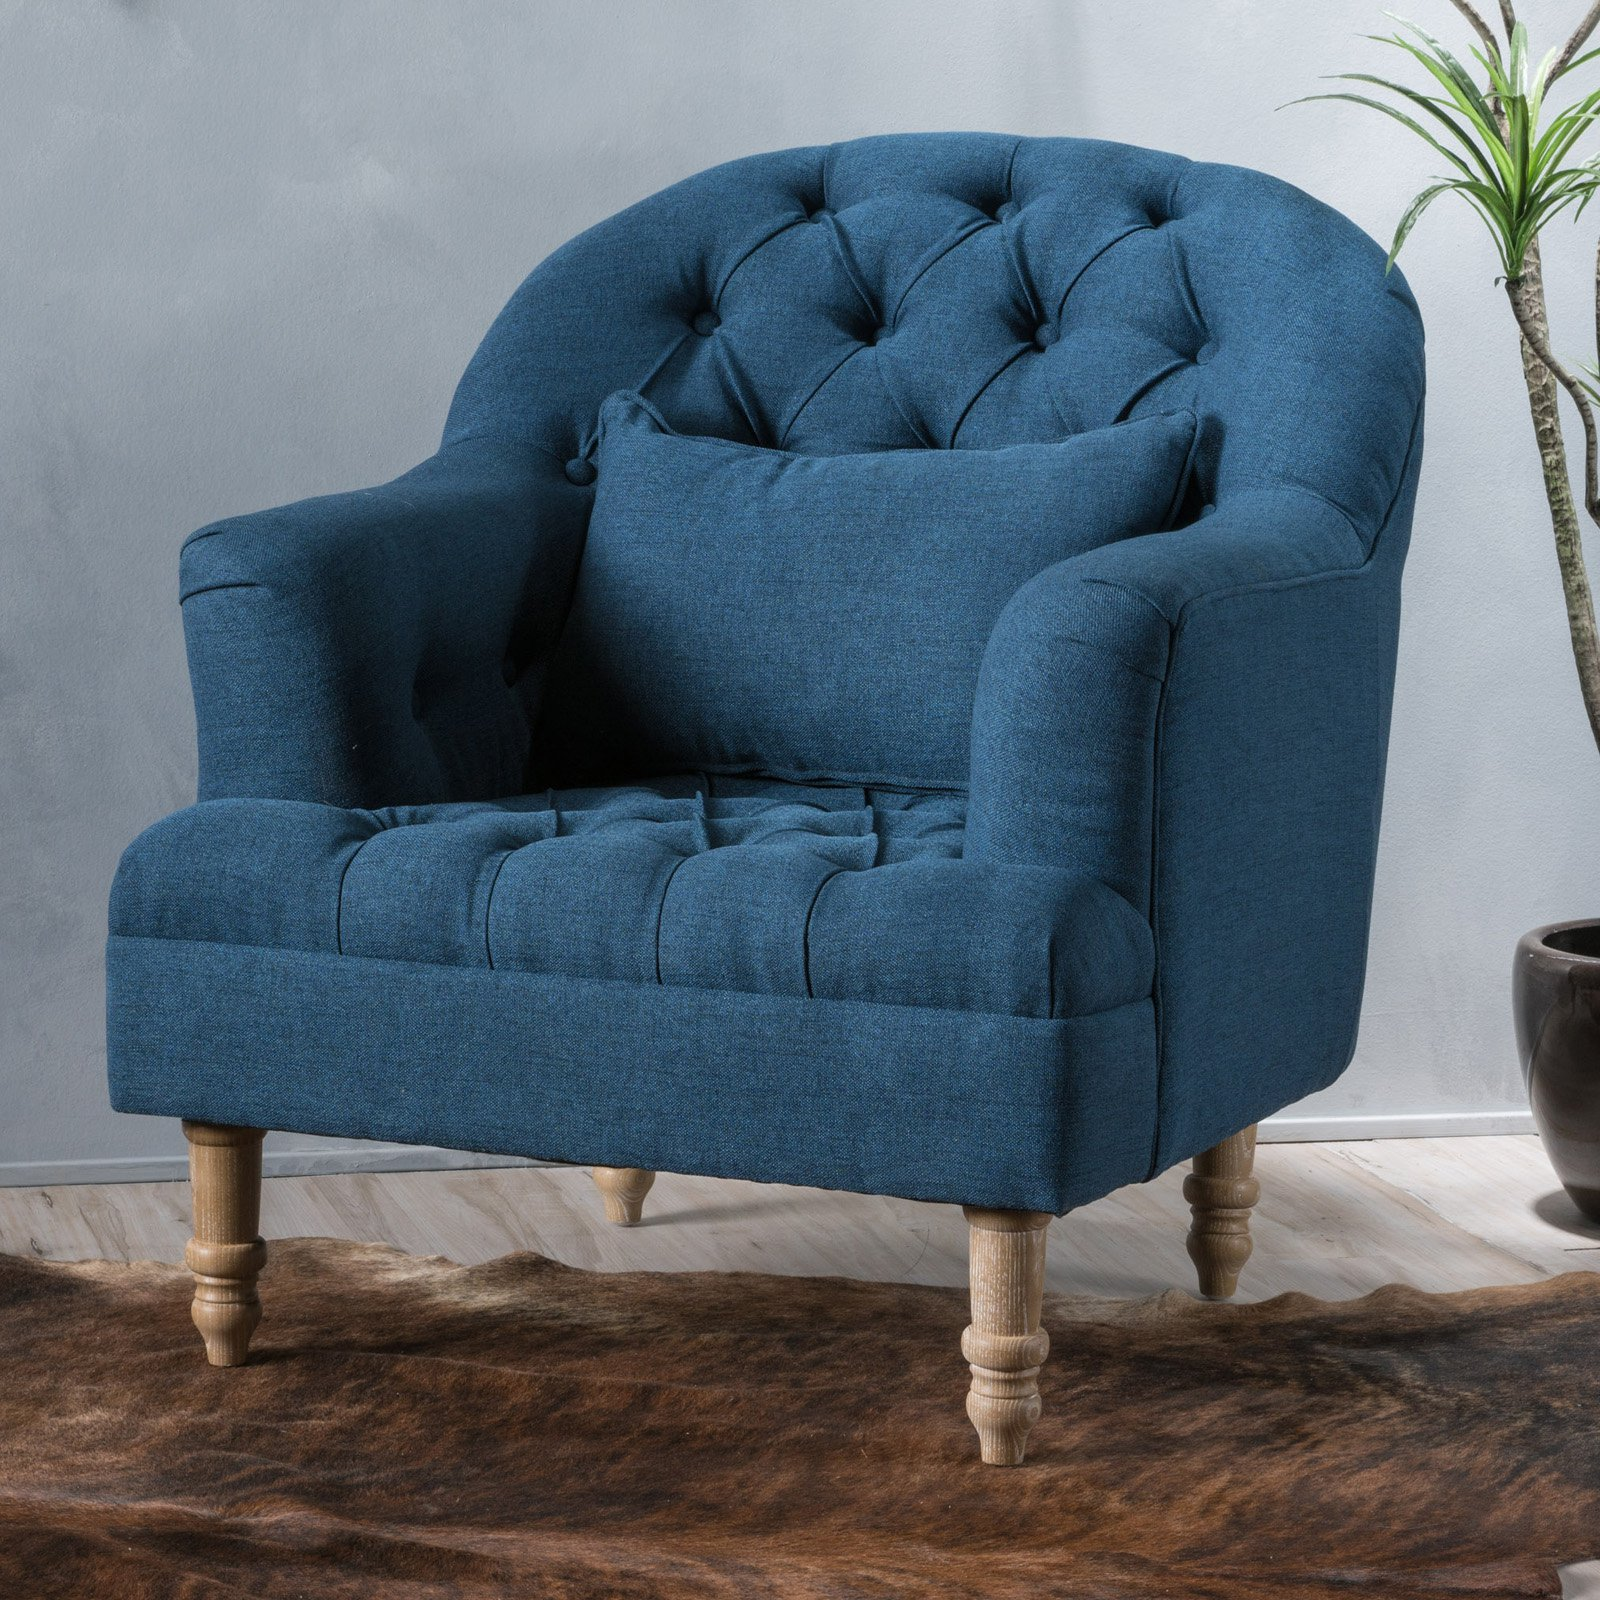 Dolores Fabric Tufted Club Chair